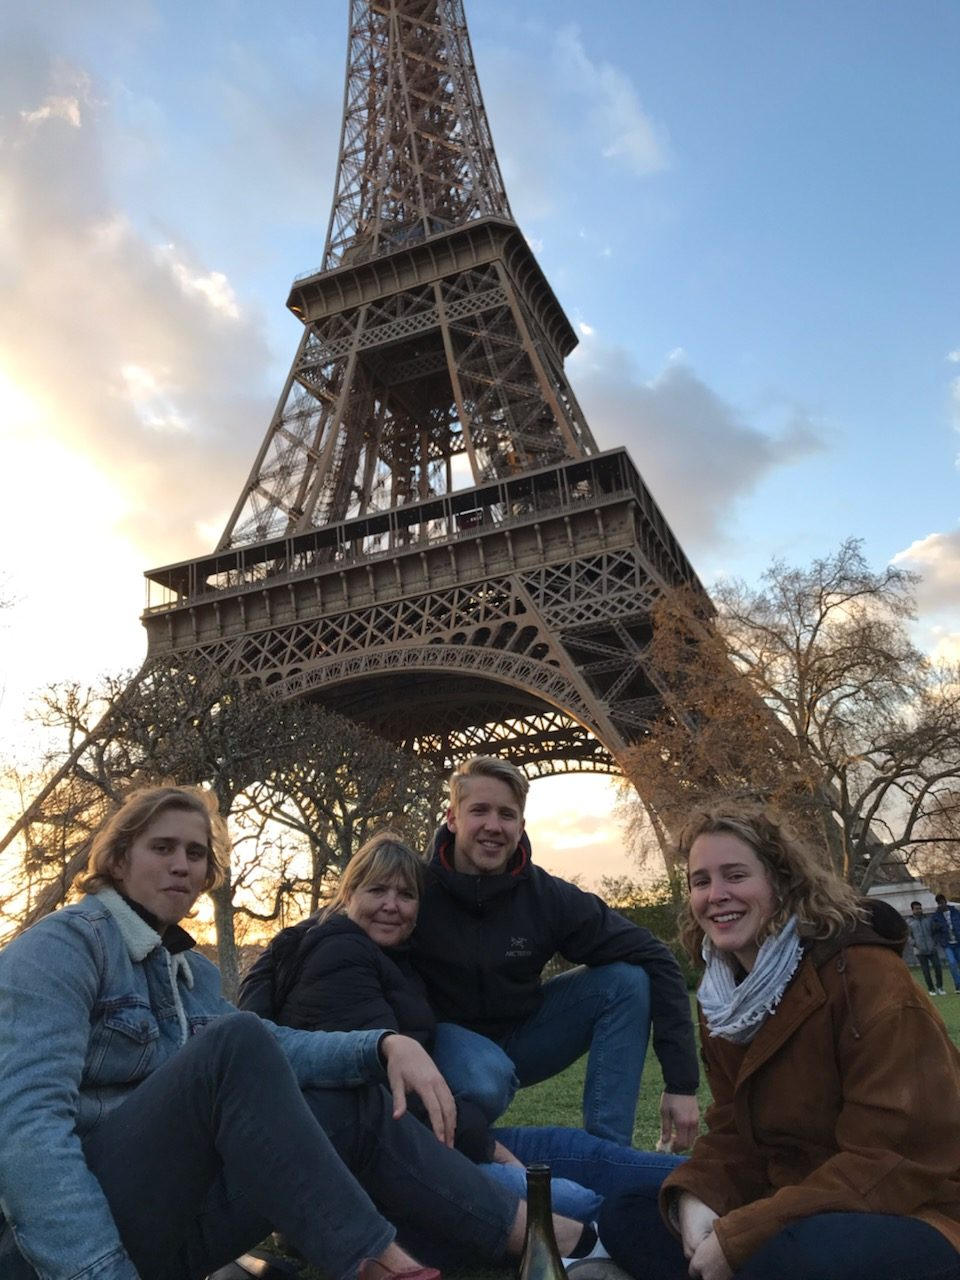 Sutton+sitting+with+his+family+underneath+the+Eiffel+tower.